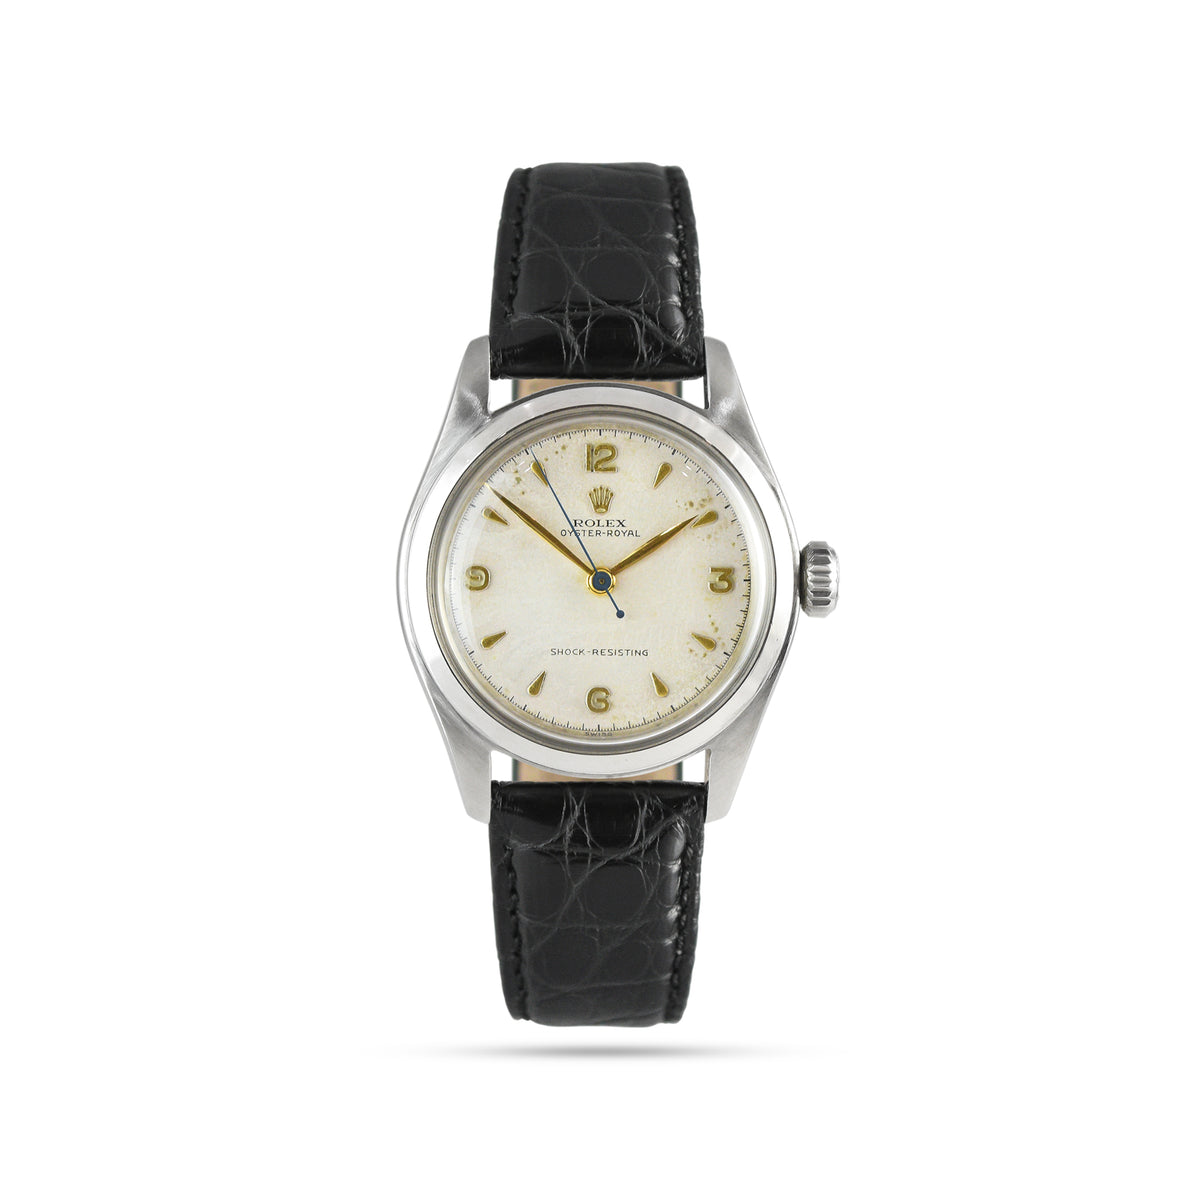 Rolex Oyster Royal 6144